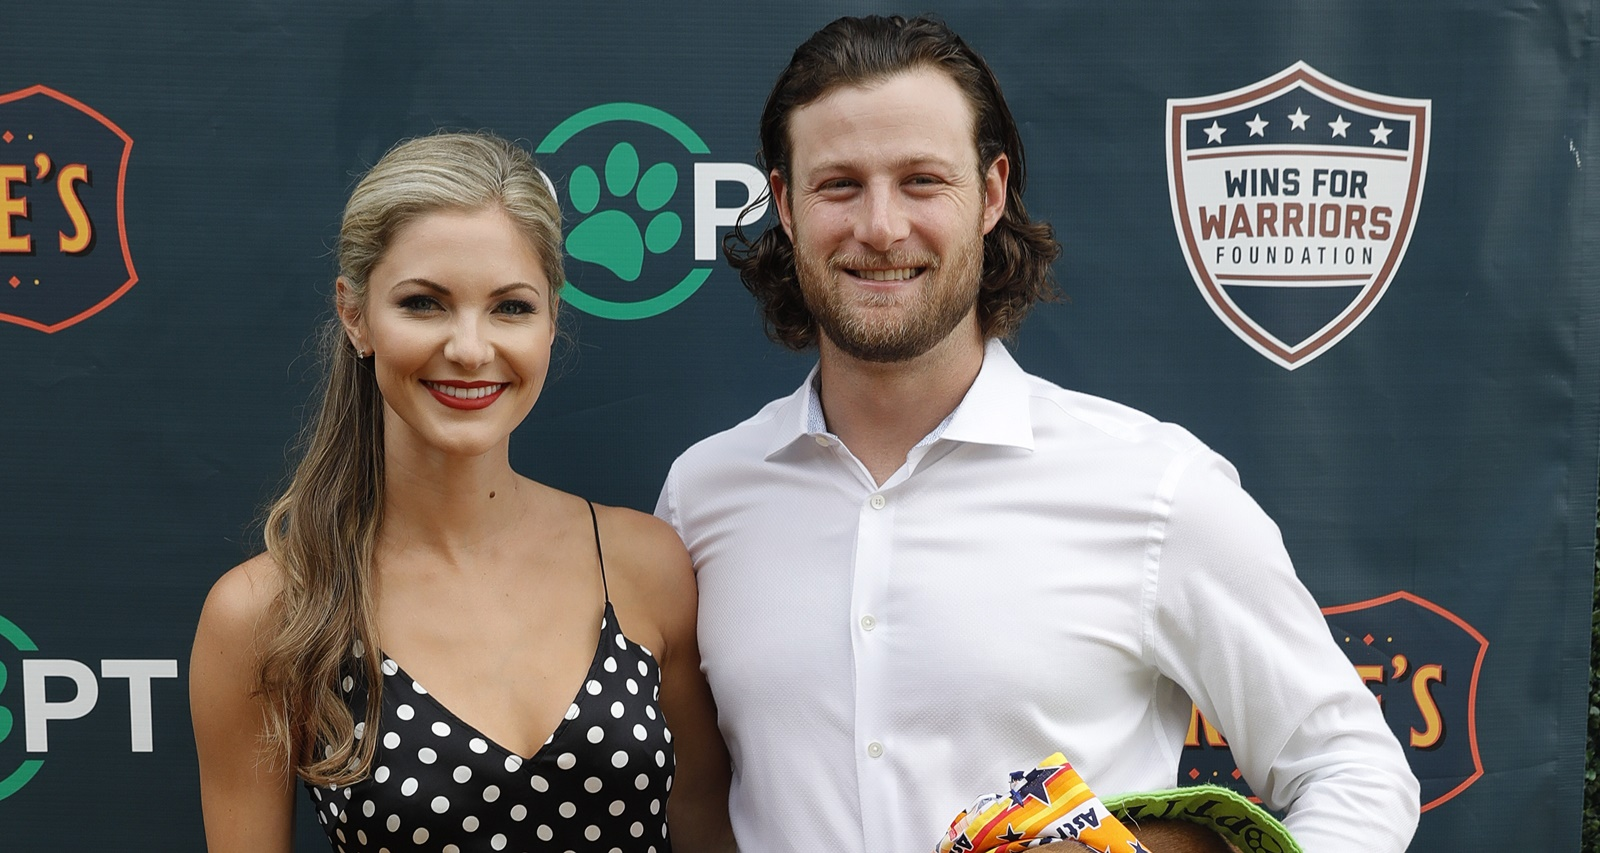 Amy Crawford Wiki, Age, Family, Career and Facts About Gerrit Cole's Wife